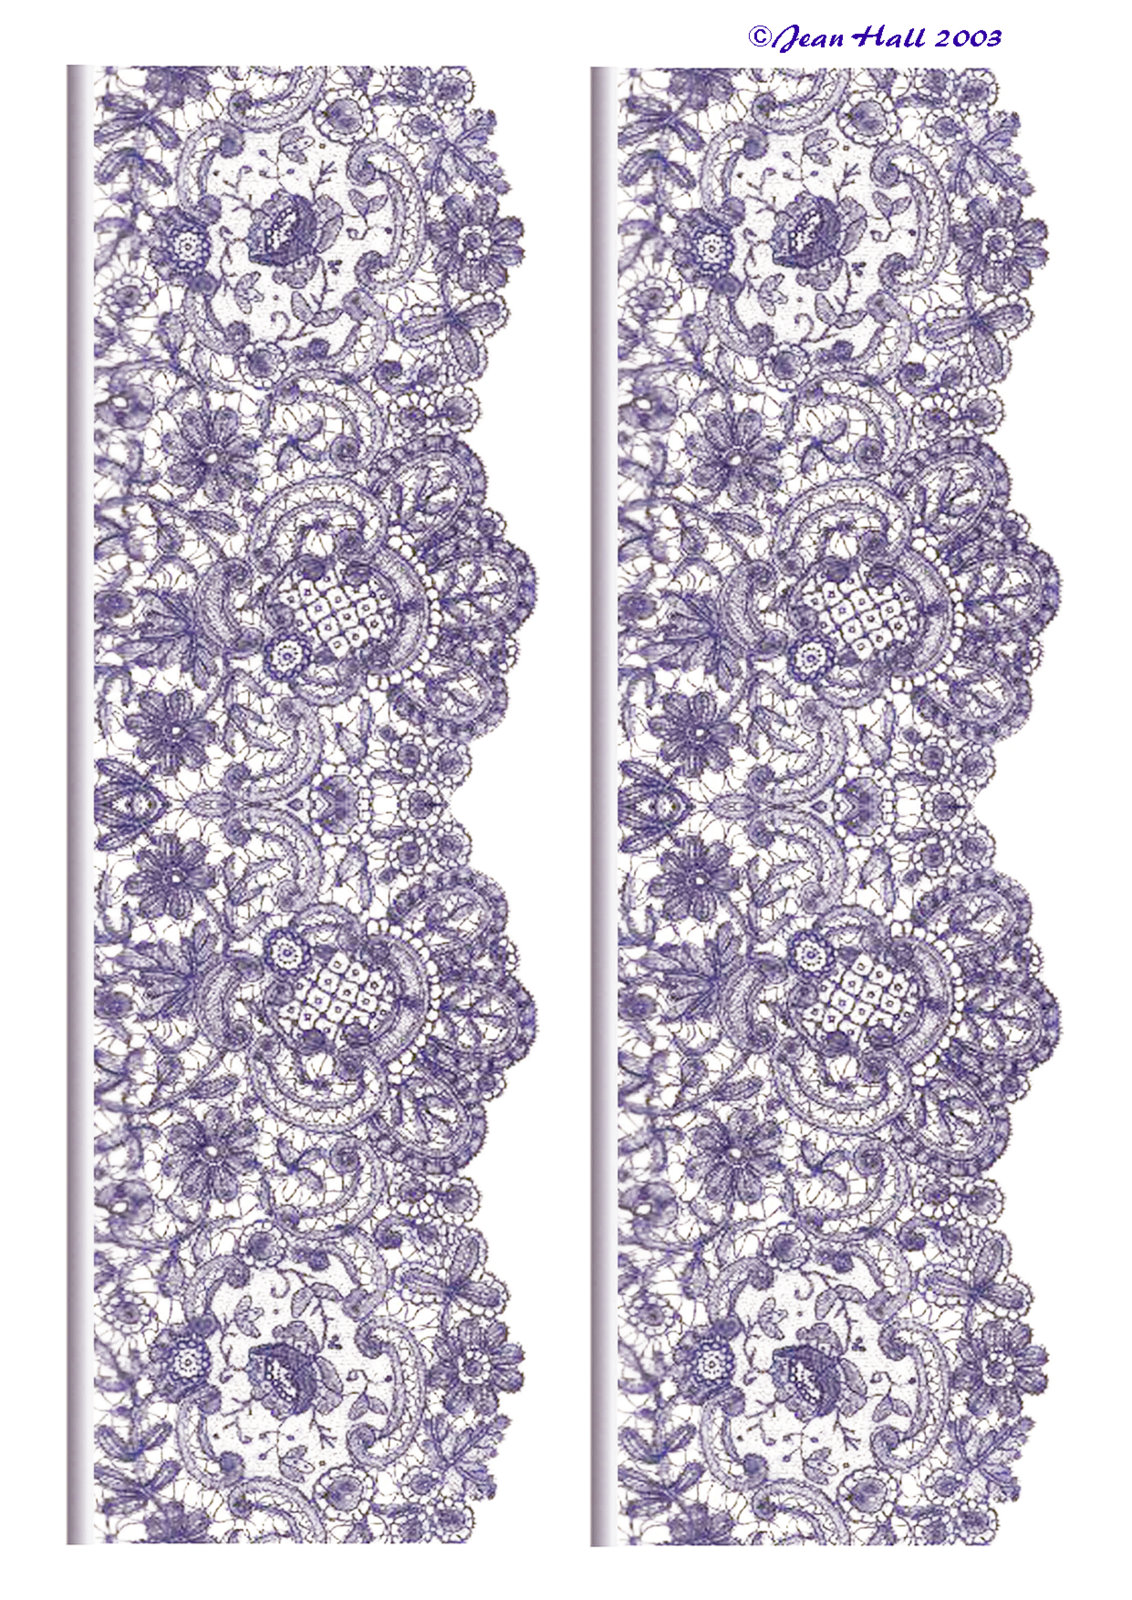 lace border drawing - photo #41